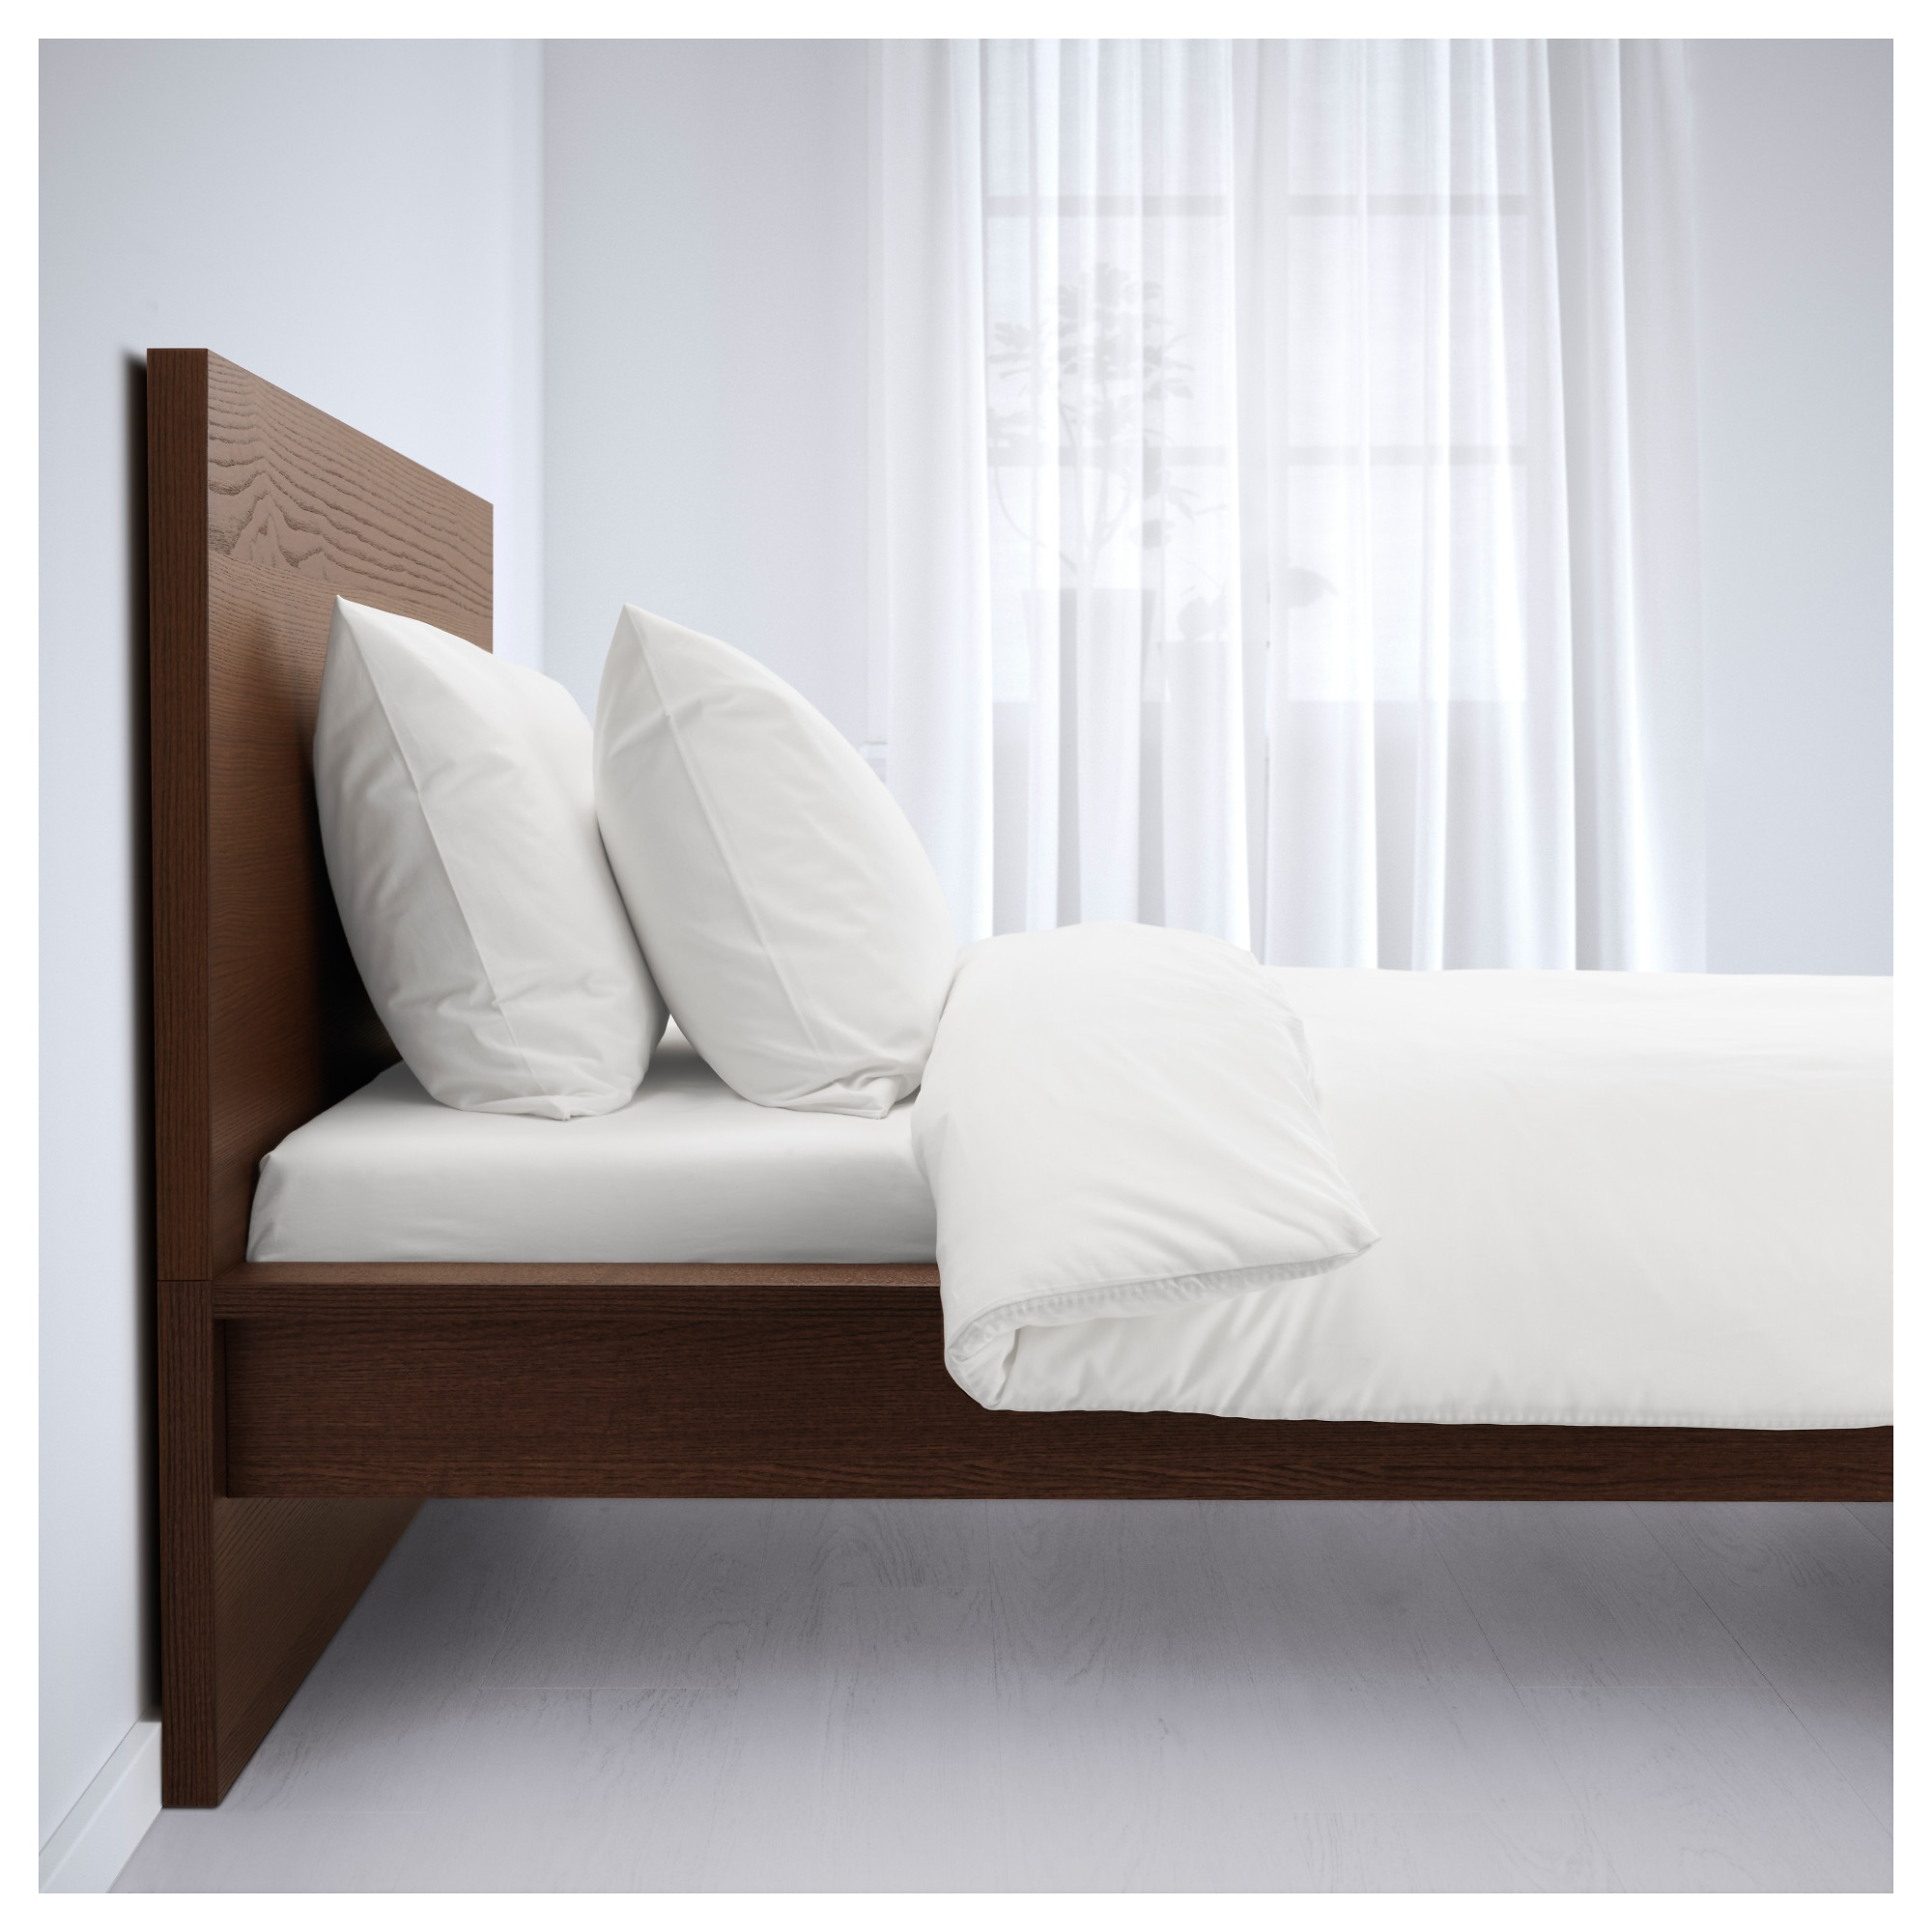 malm bed frame high queen ikea - High Queen Bed Frame